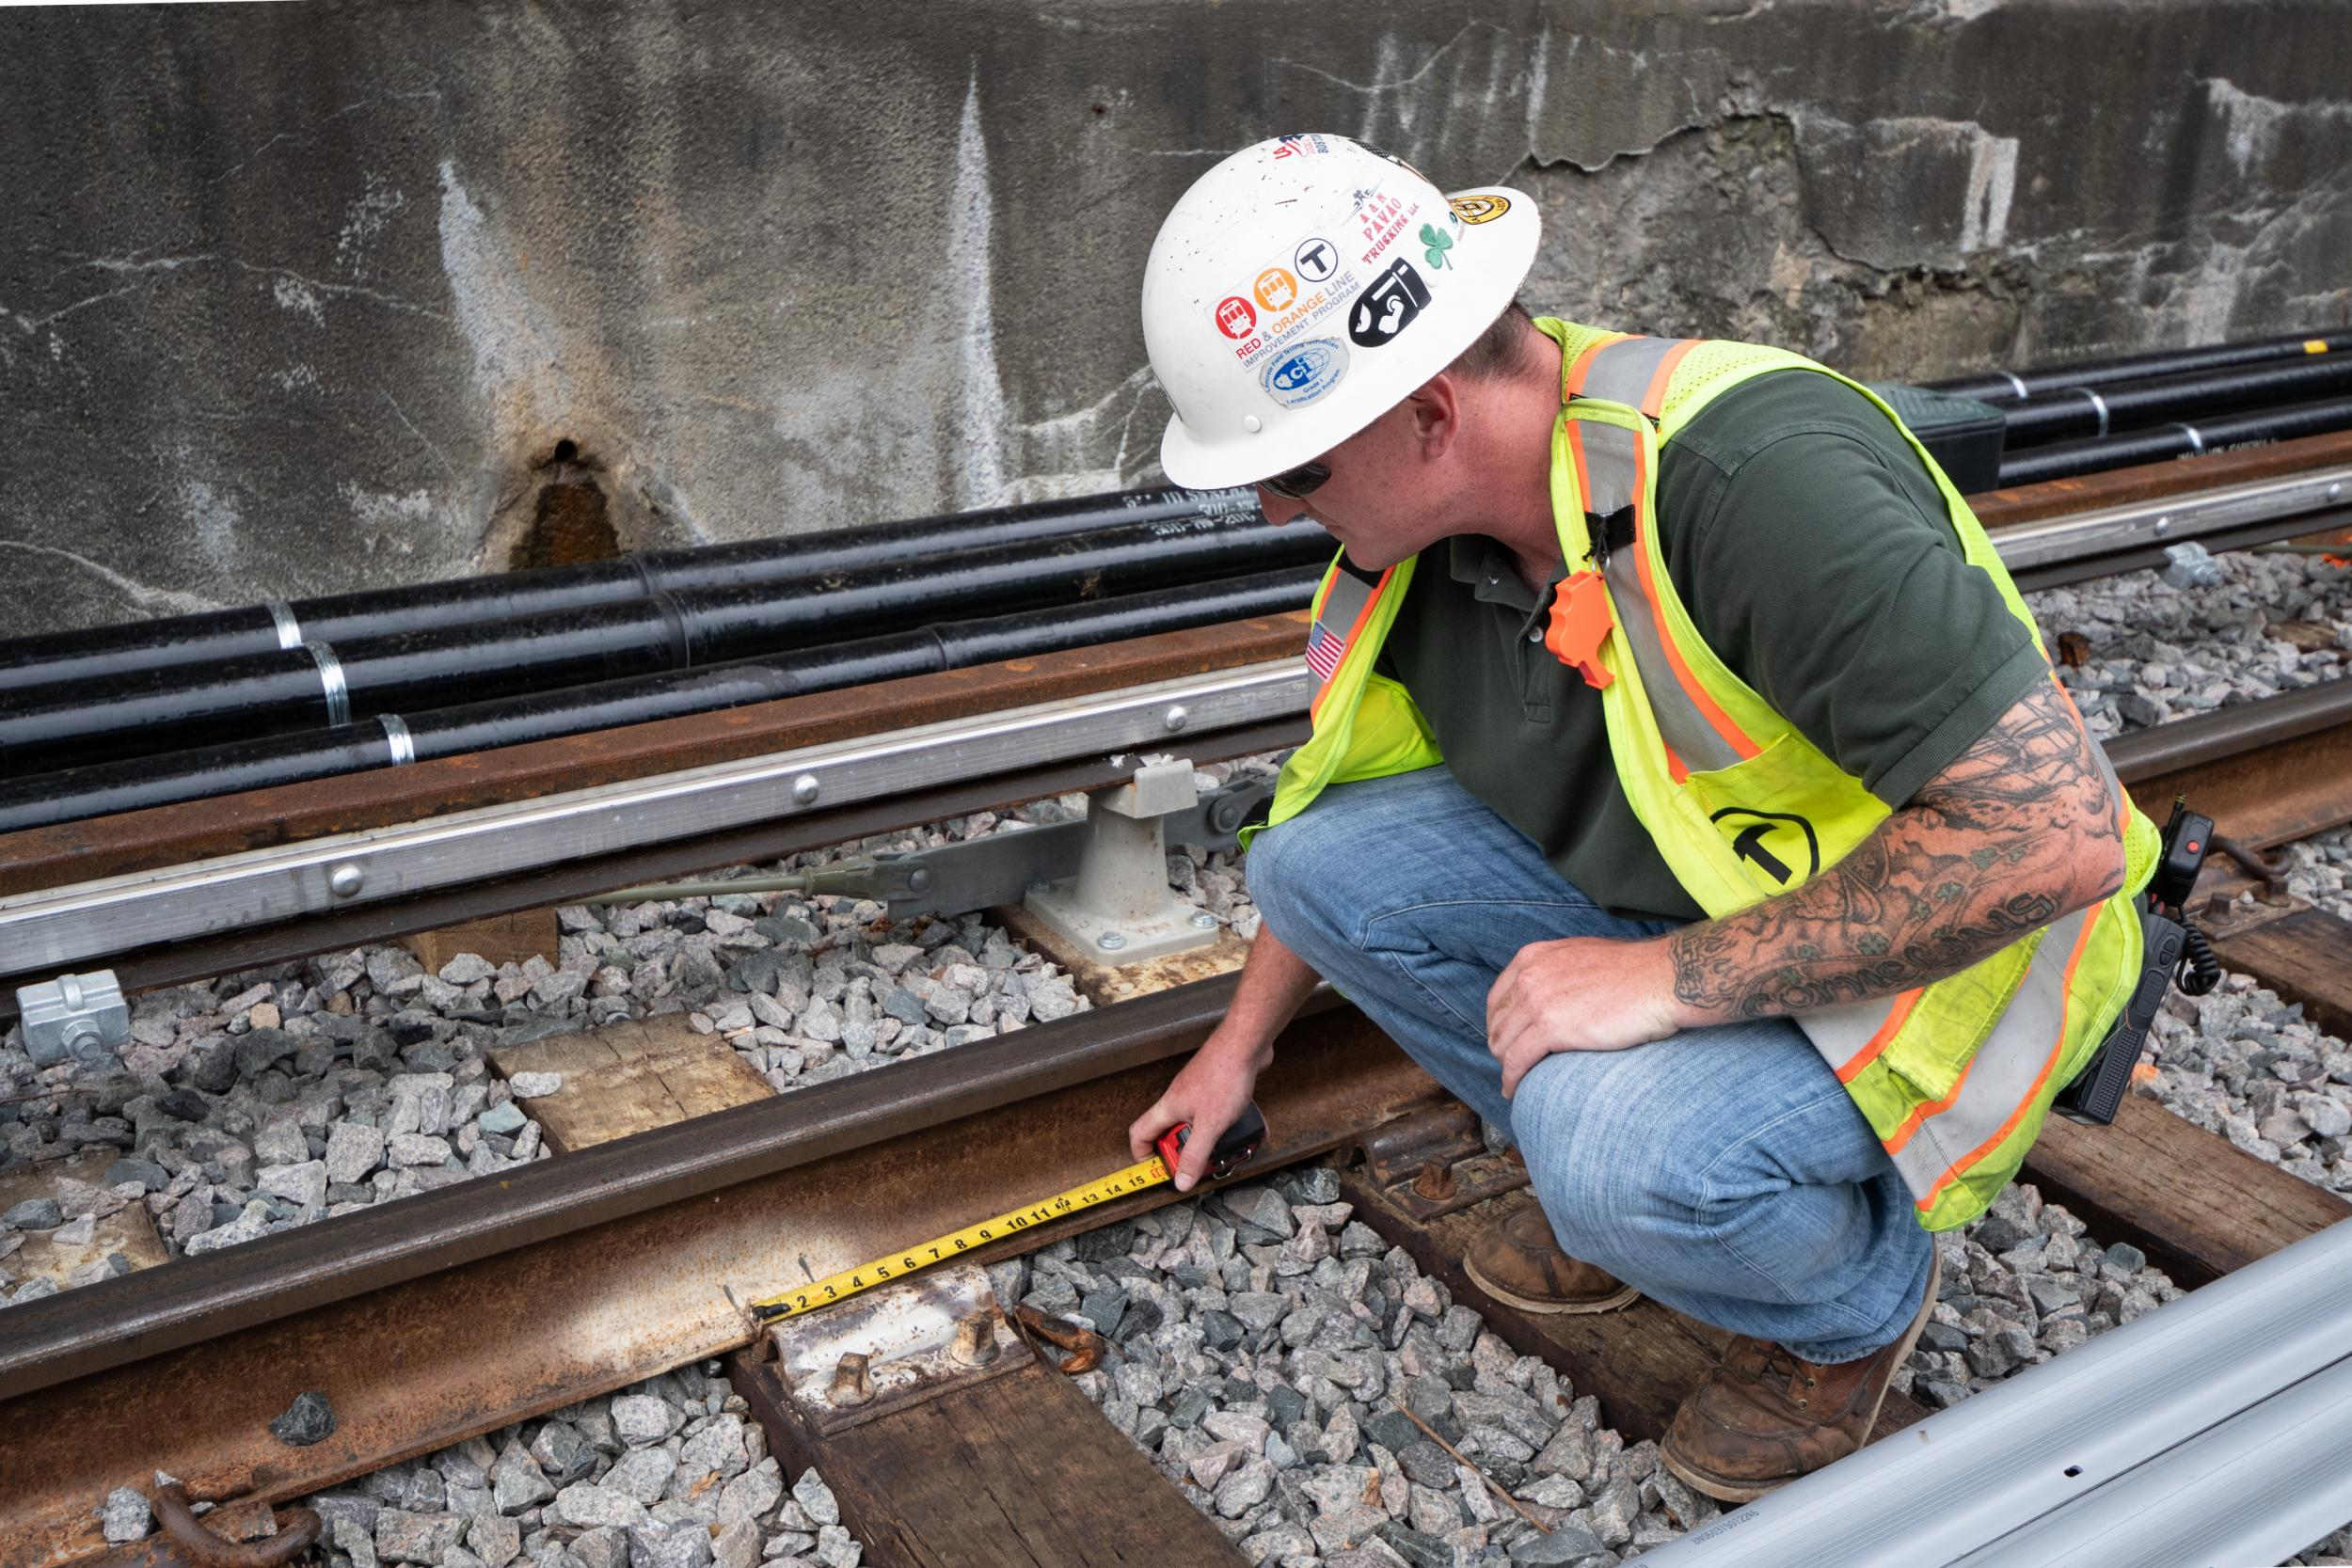 A worker examines track that has been de-stressed before it is welded. (July 2019)